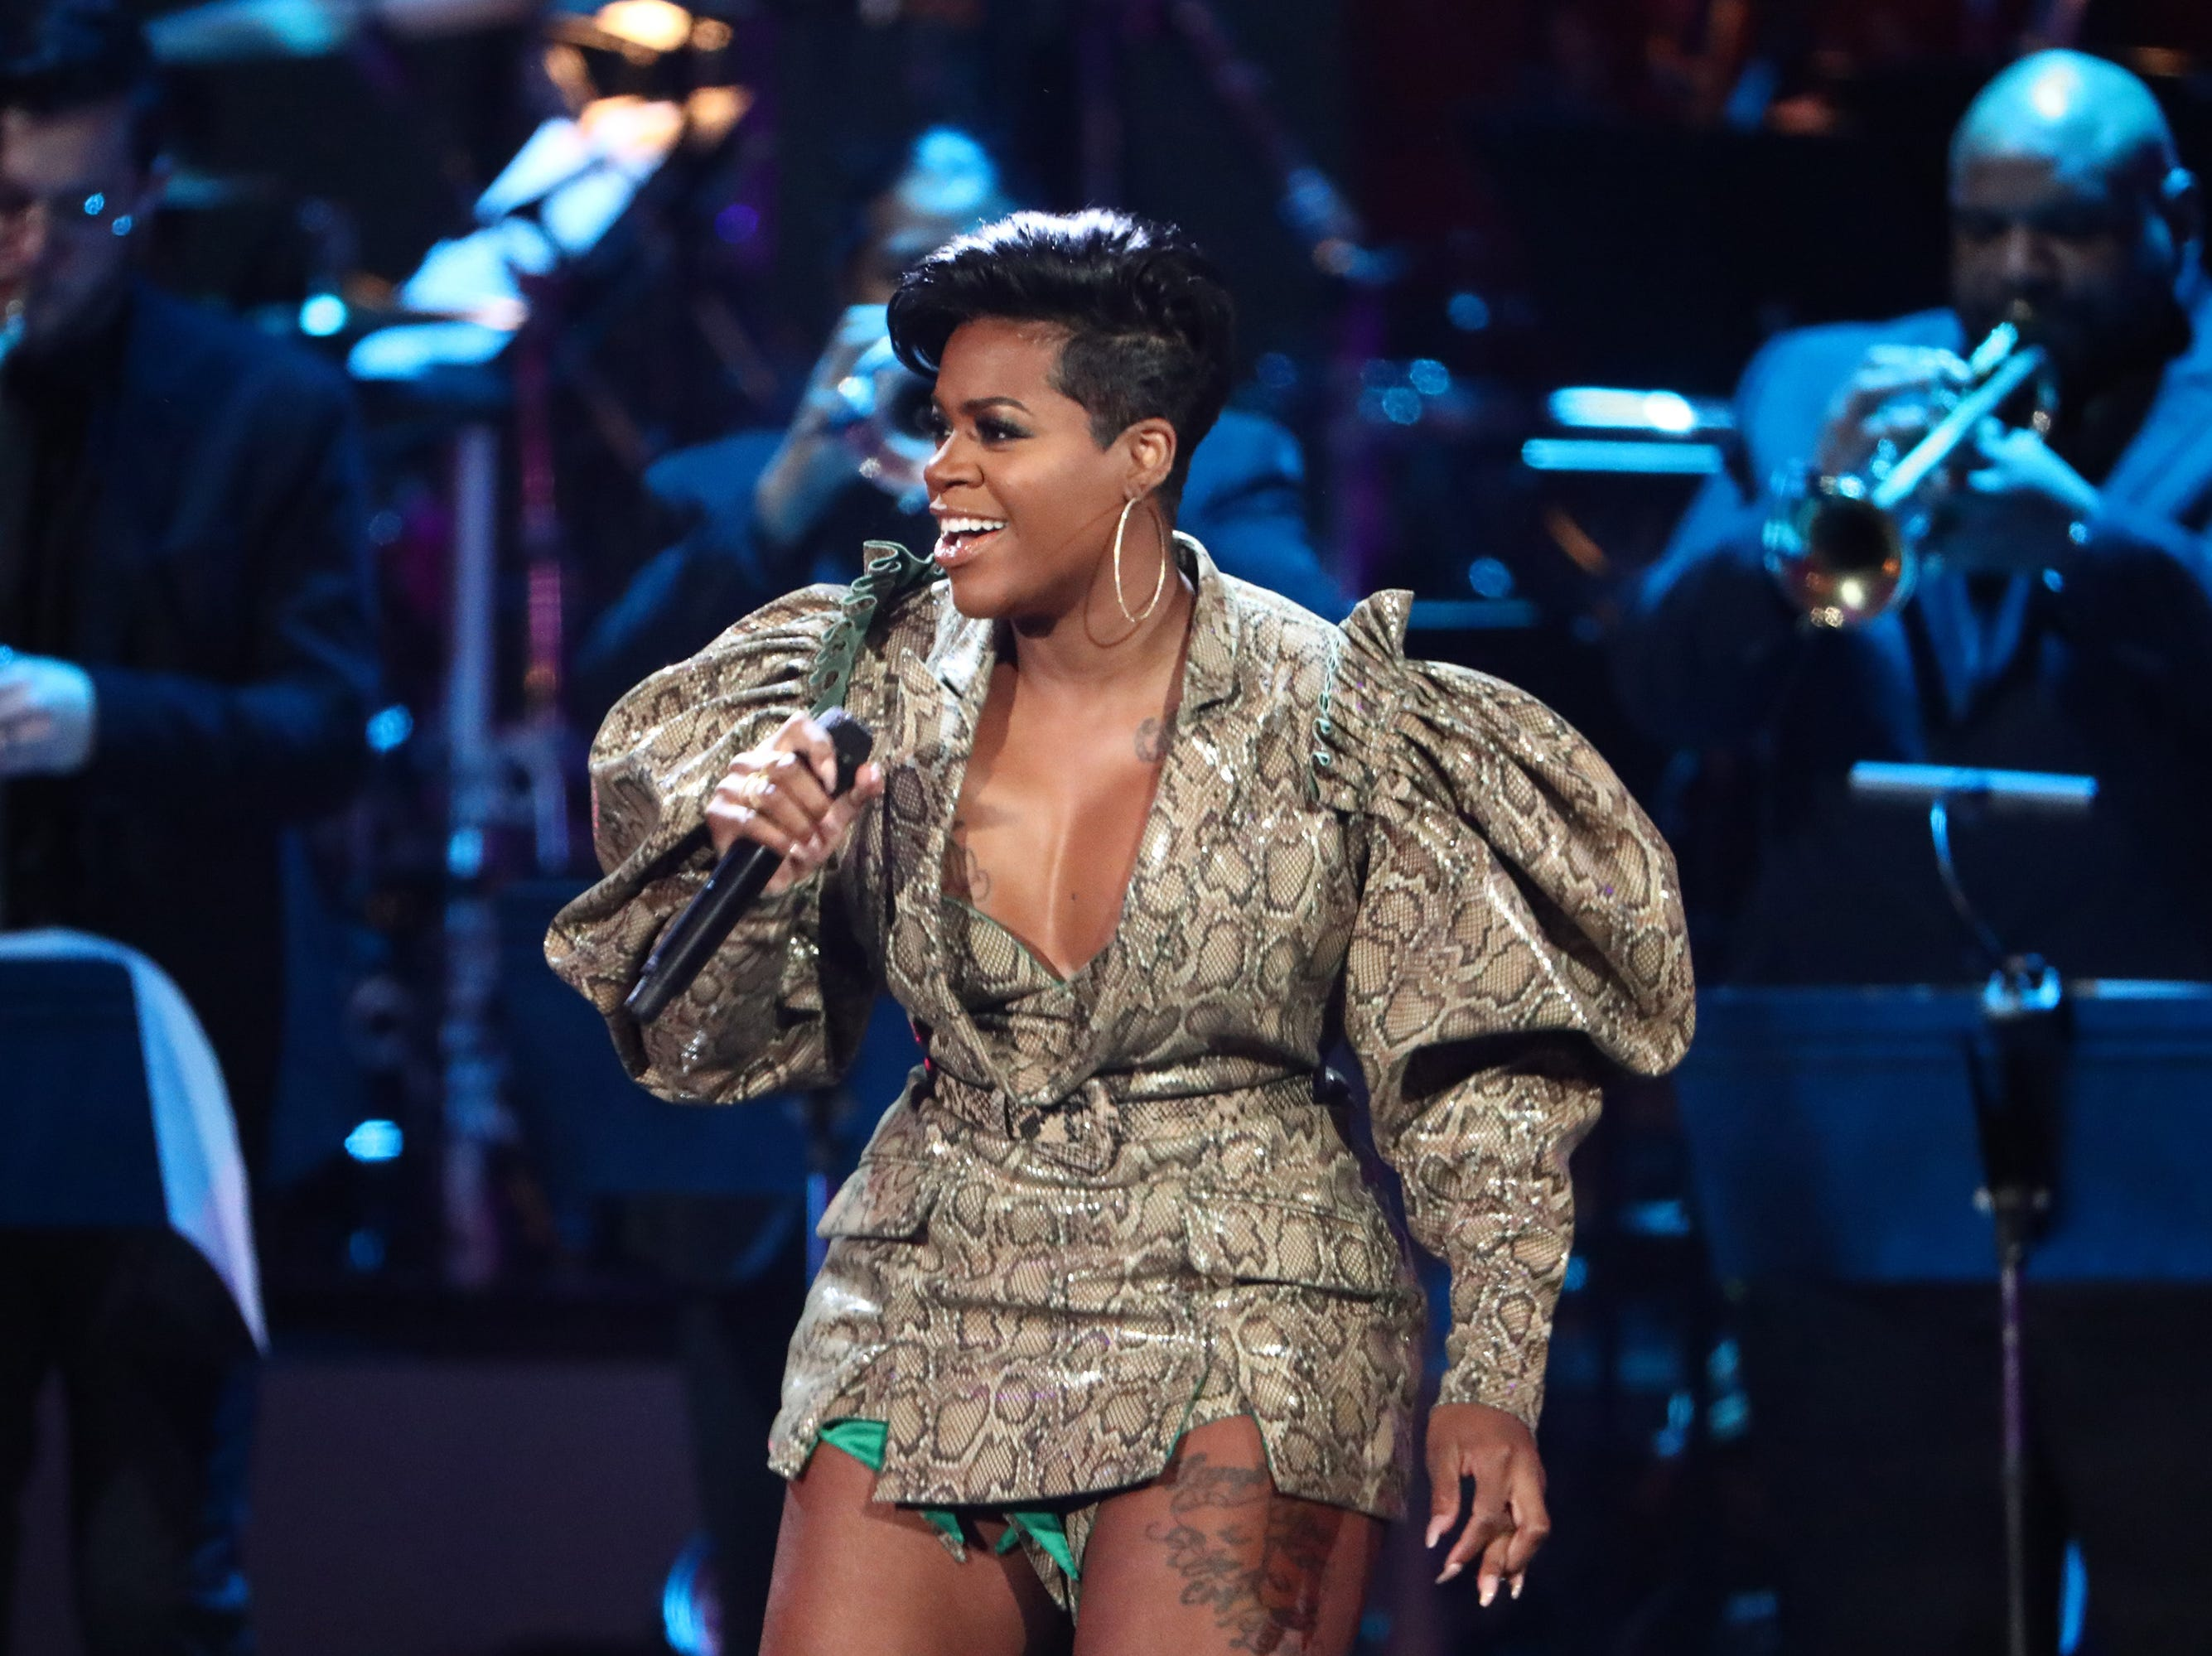 """LOS ANGELES, CA - JANUARY 13:  Fantasia performs at """"Aretha! A Grammy Celebration For the Queen Of Soul"""" at the Shrine Auditorium on Jan. 13, 2019, in Los Angeles, Calif."""